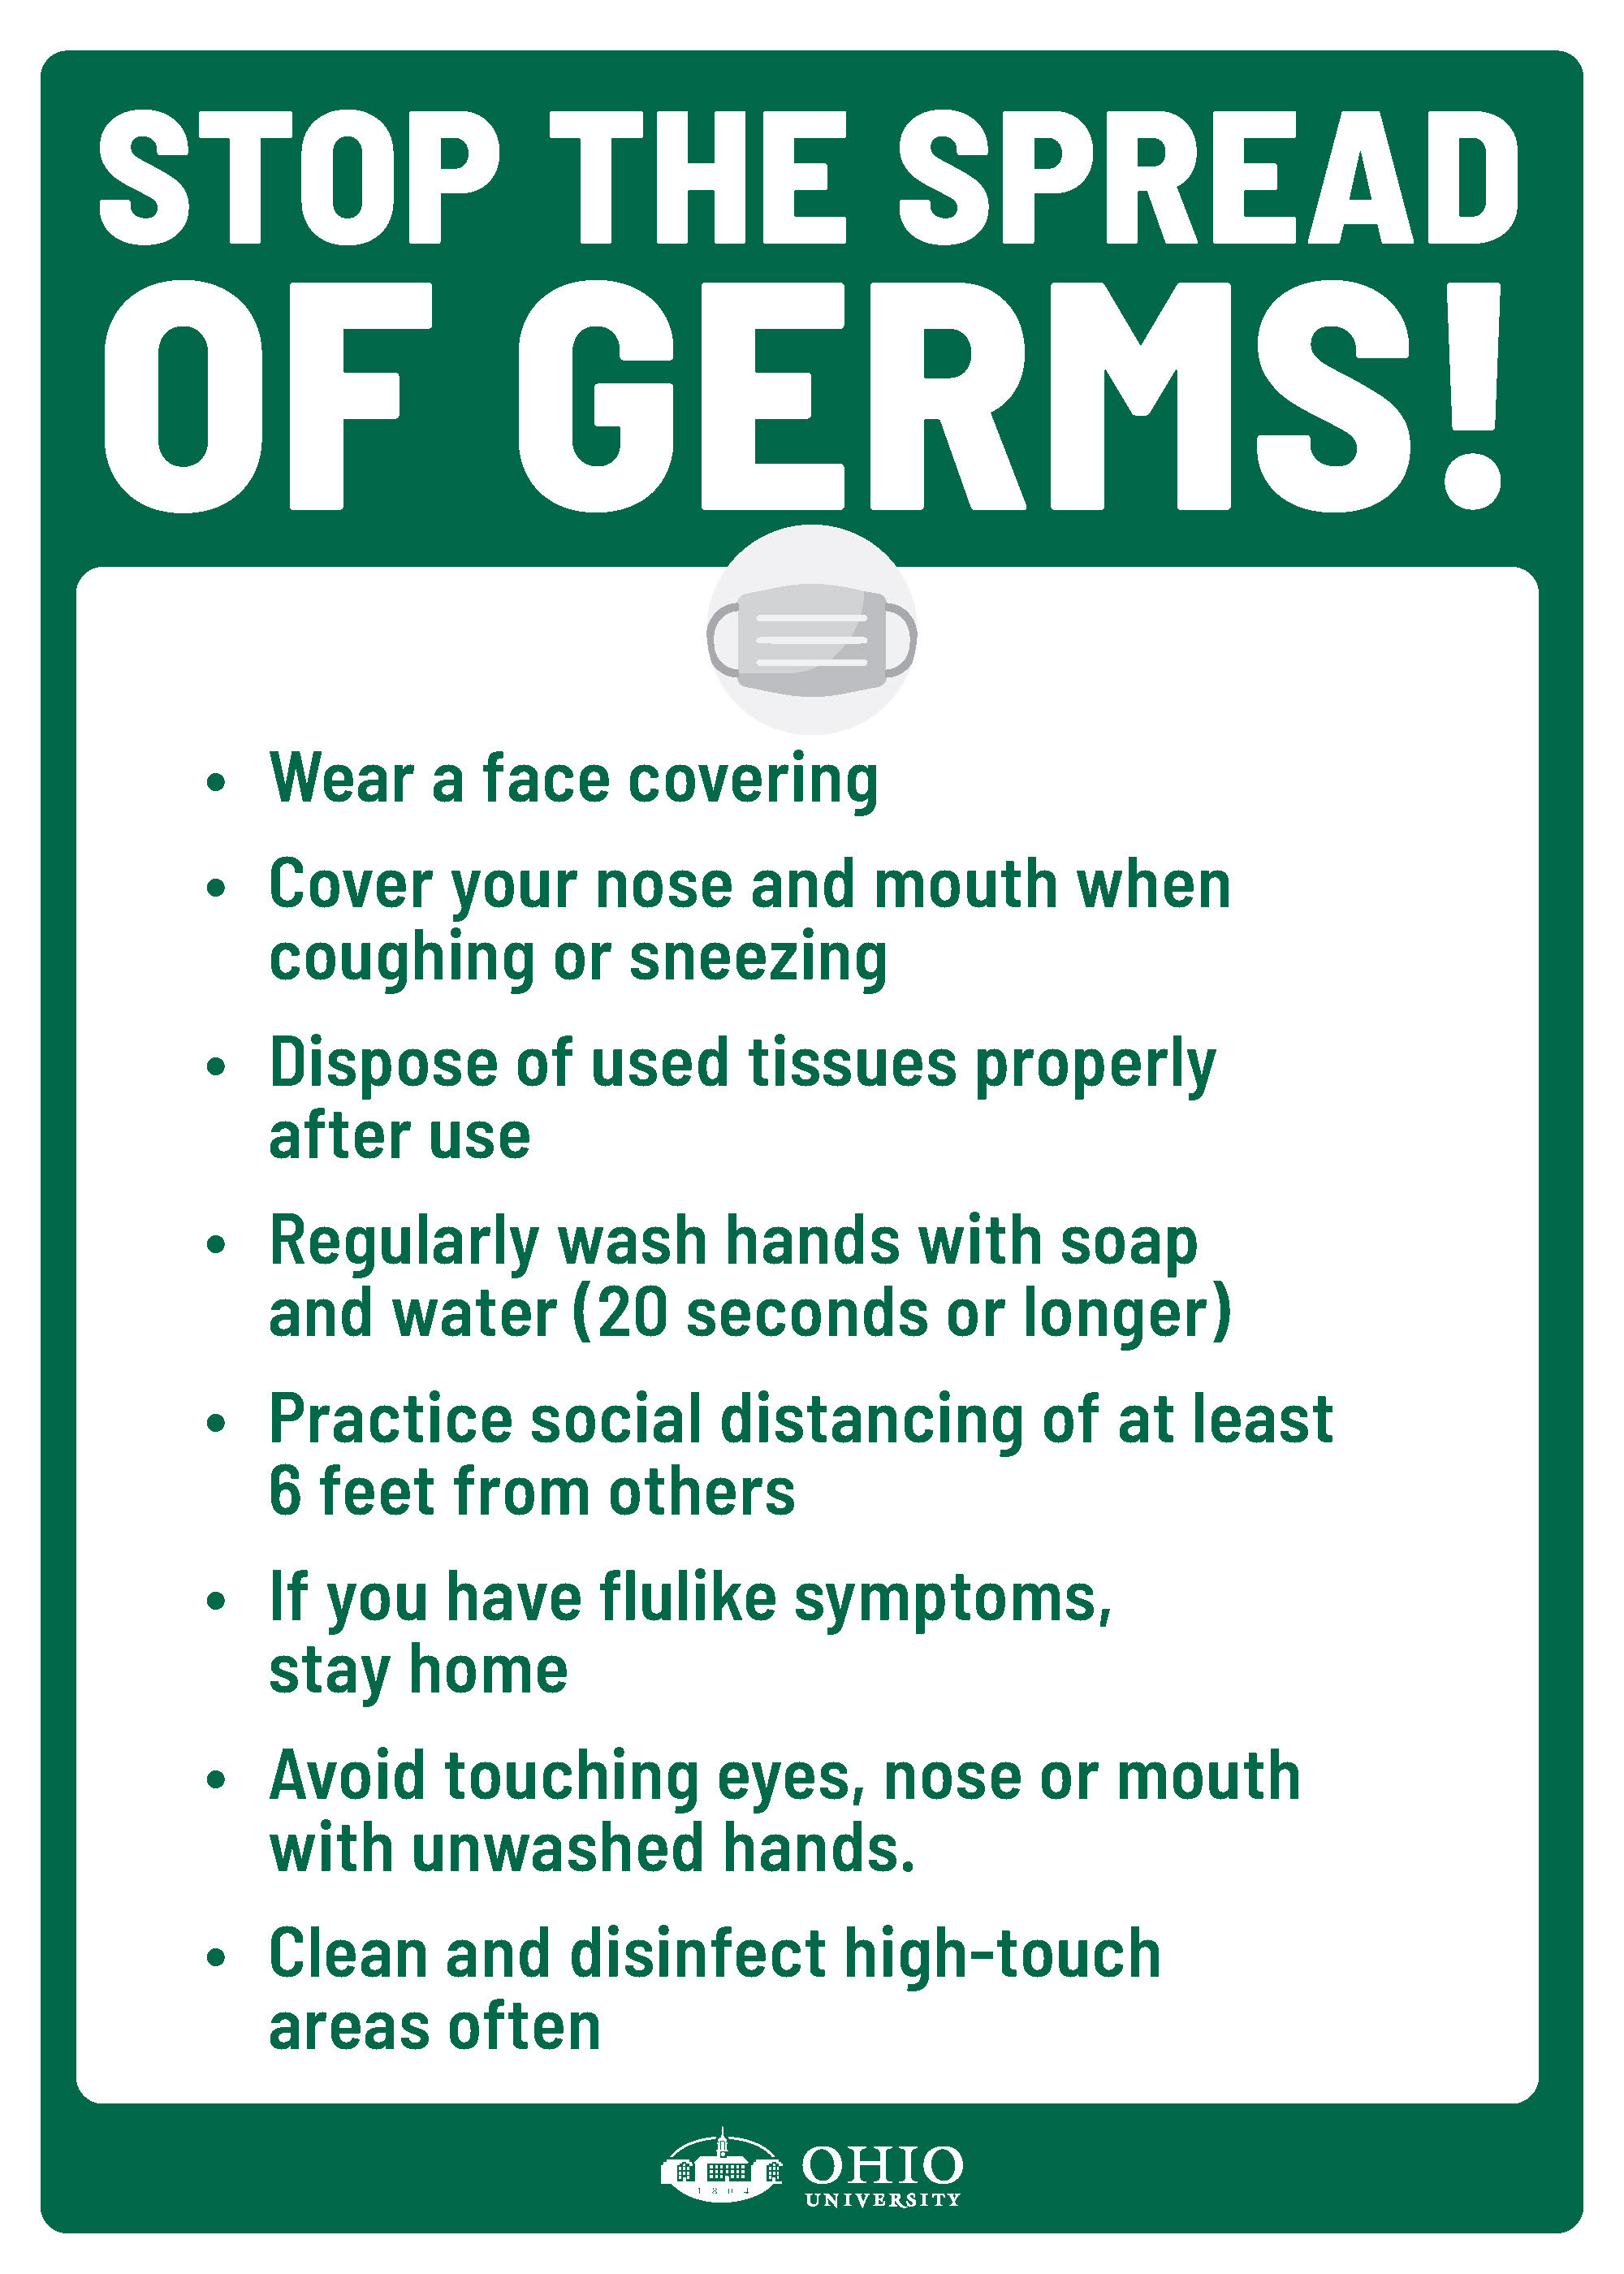 A sign that contains general guidelines for containing germs during COVID